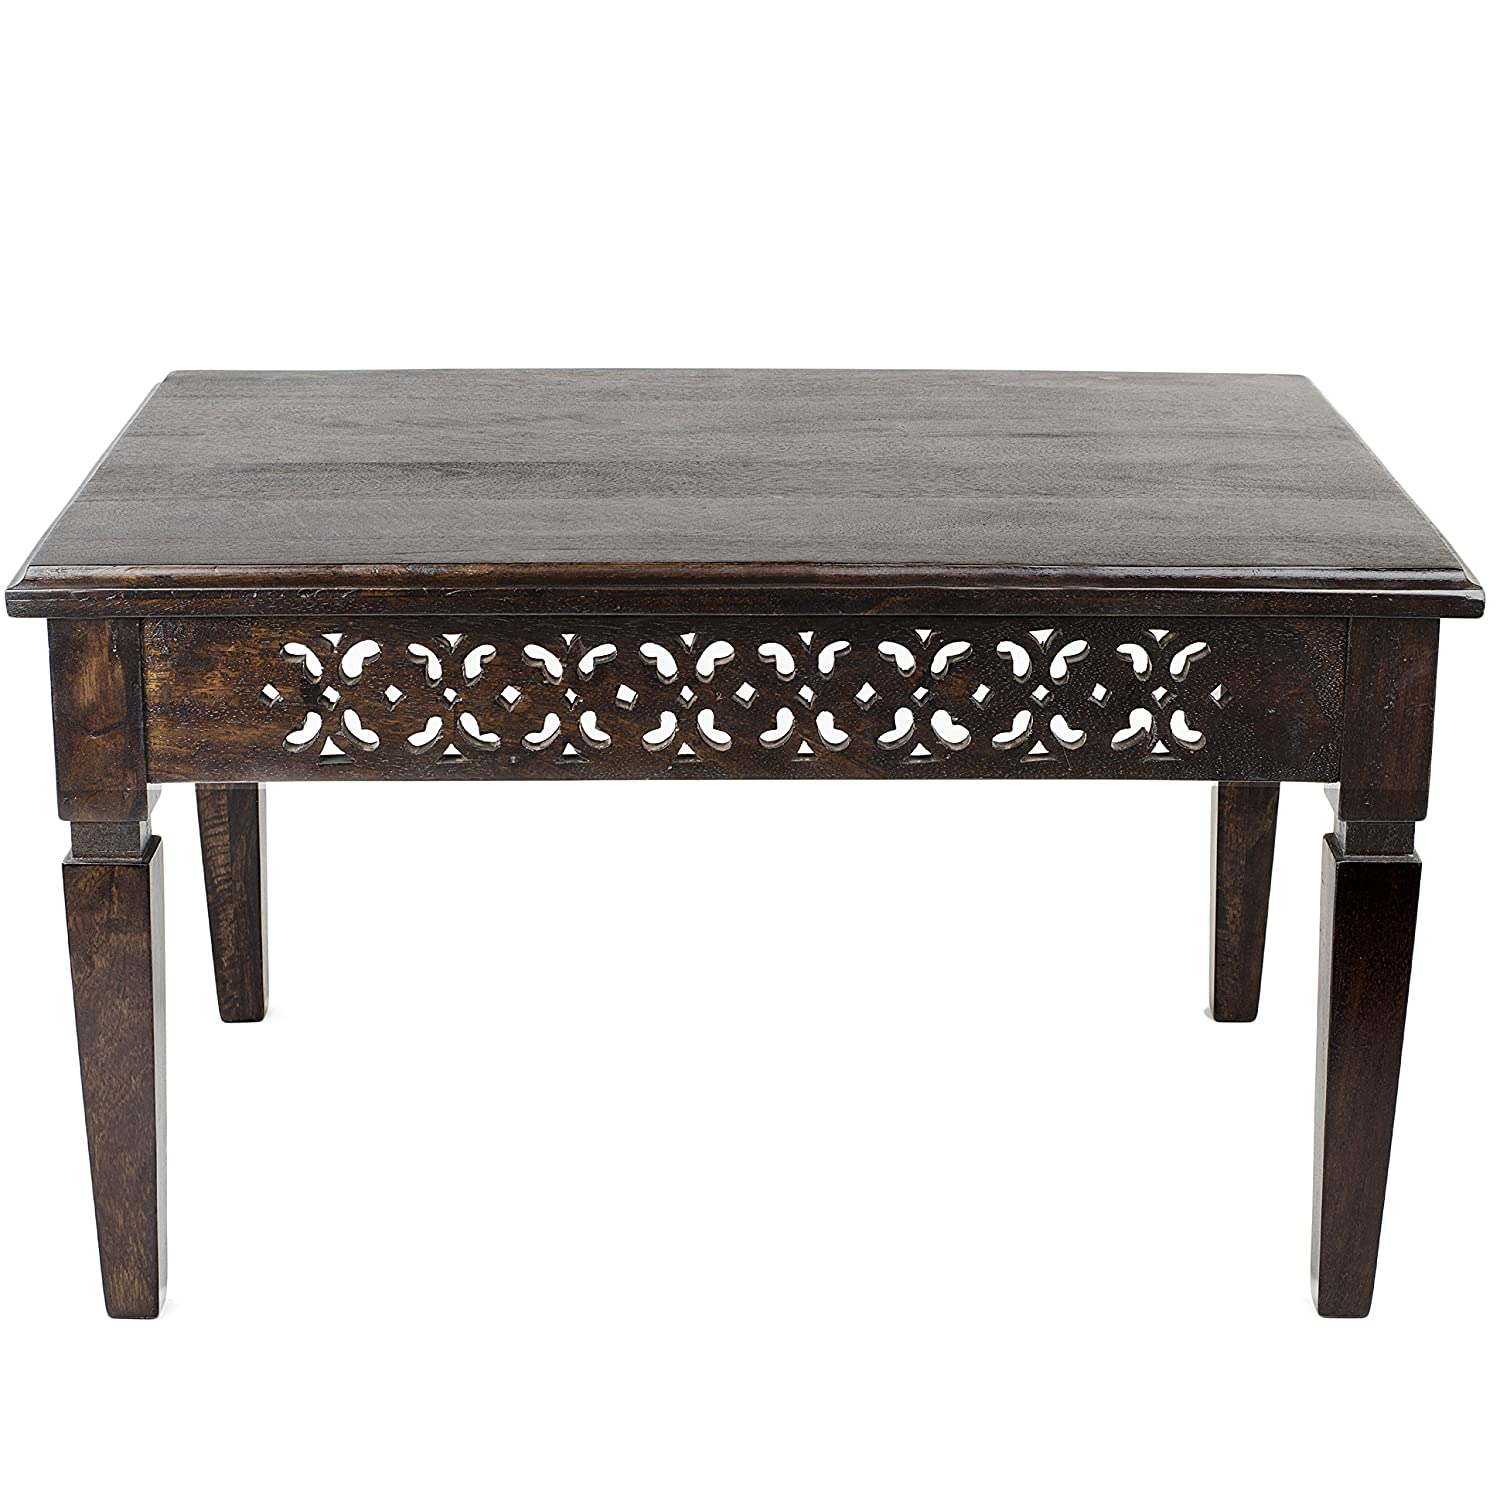 Swhf Beans Jali Cutting Coffee Table Amazon In Home Kitchen